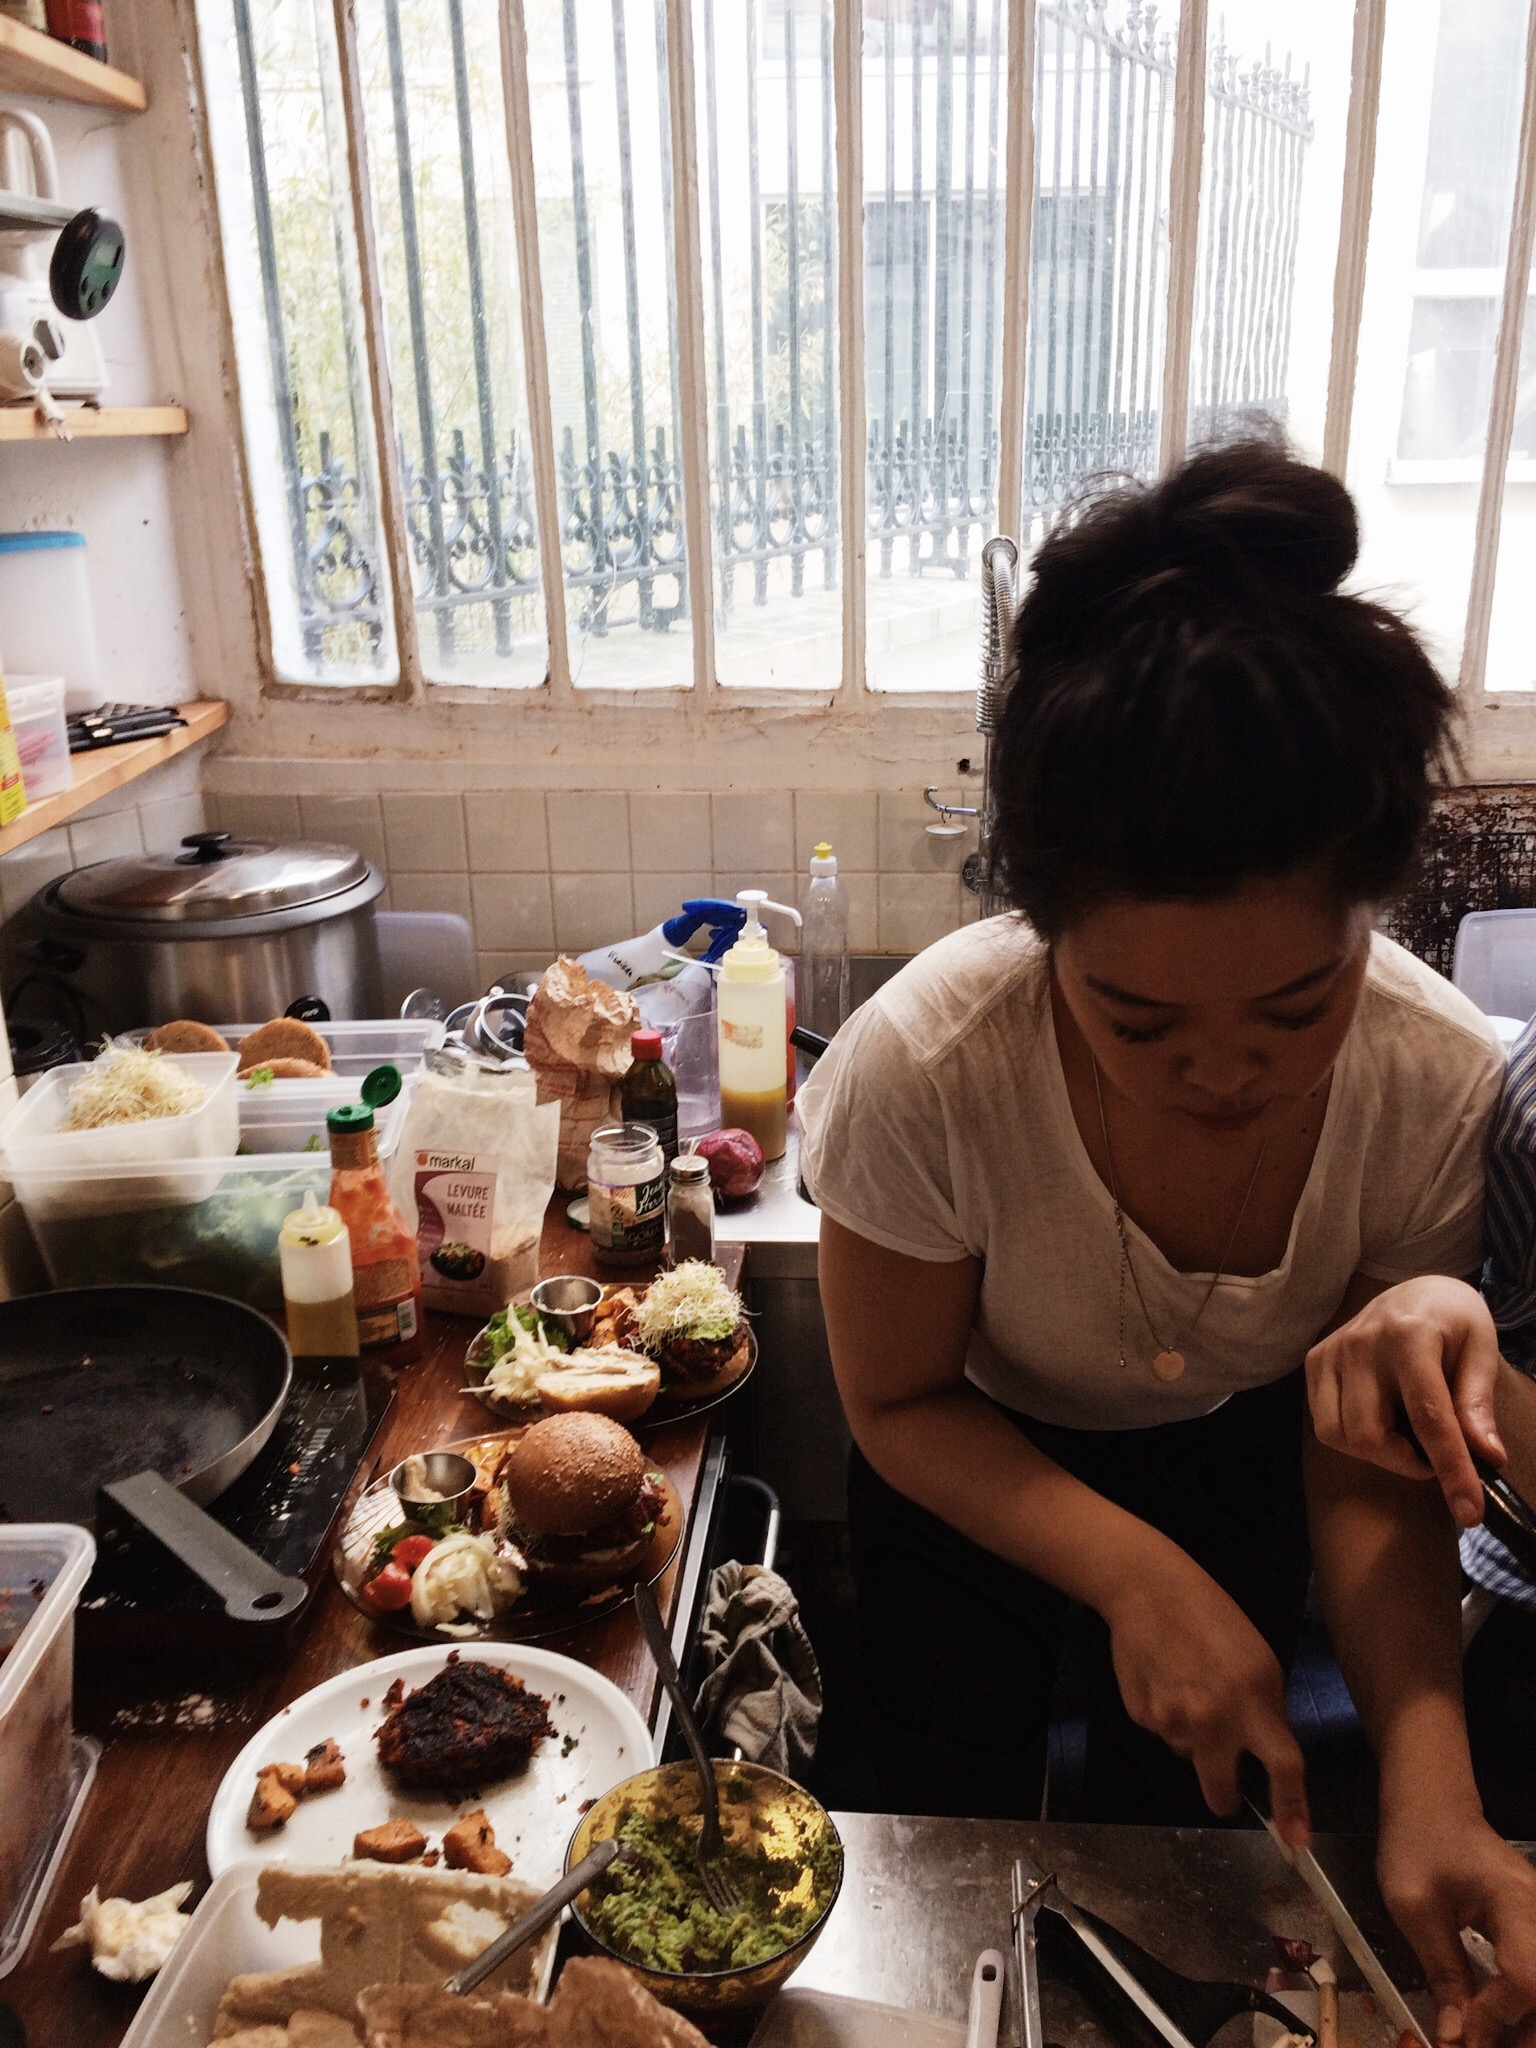 Yun in the kitchen making delicious vegan creations!